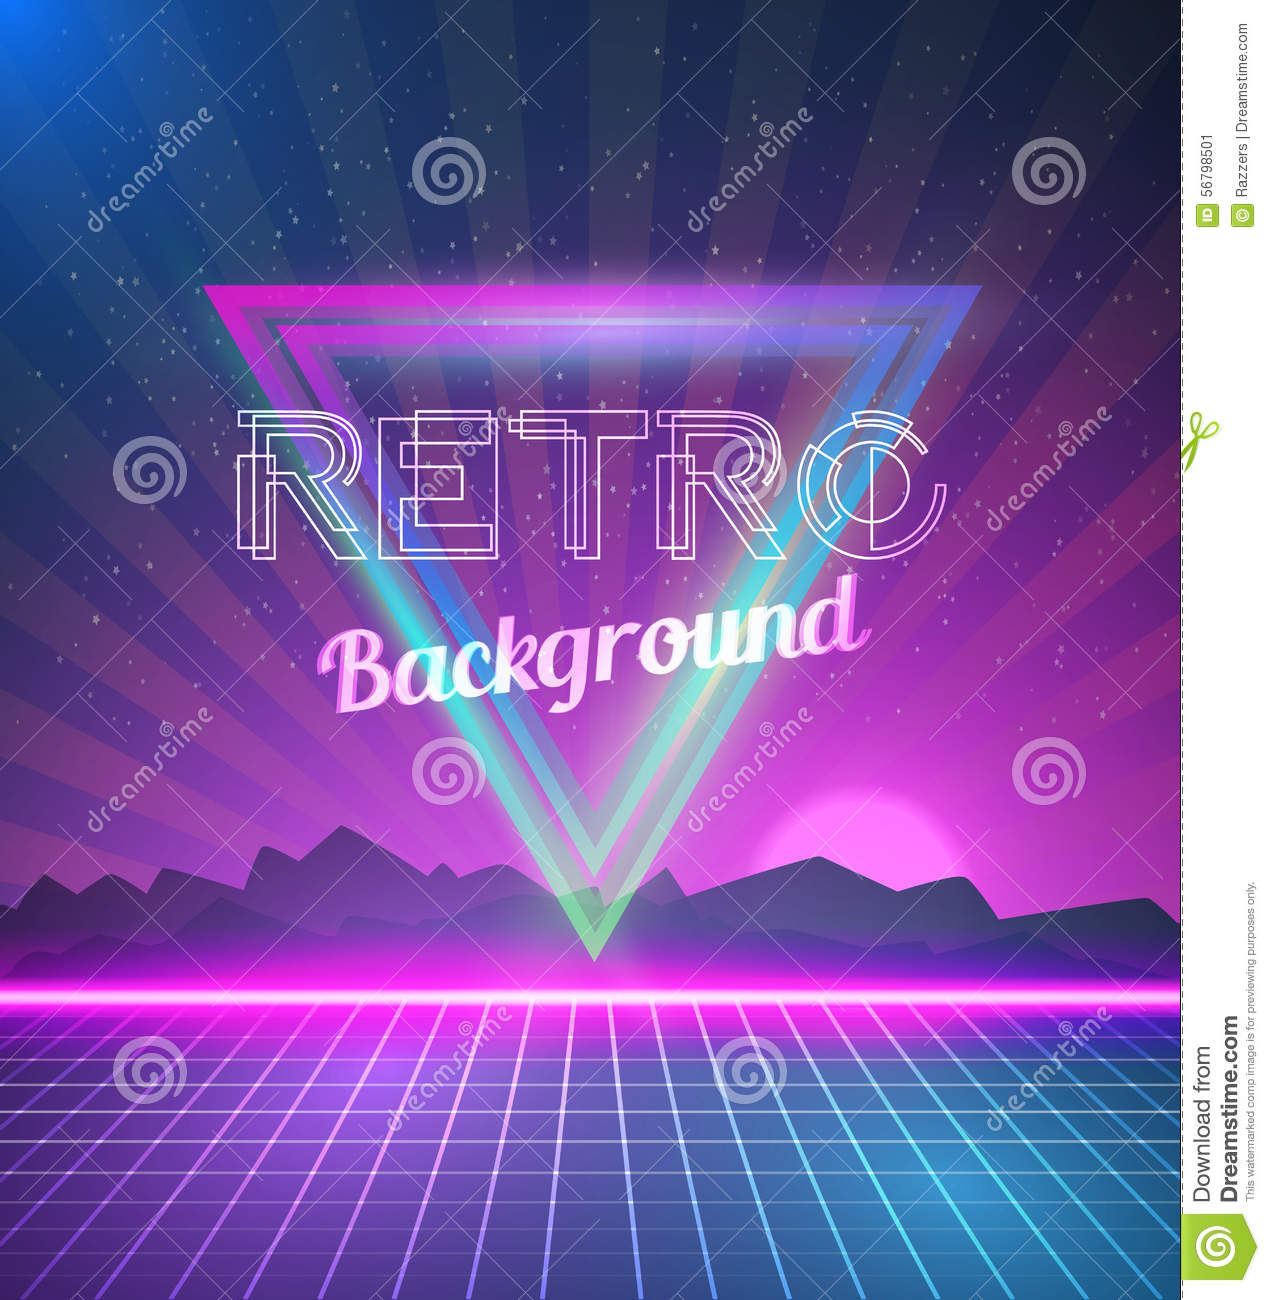 80s poster design - Retro Disco 80s Neon Poster Made In Tron Style With Triangles F Stock Image